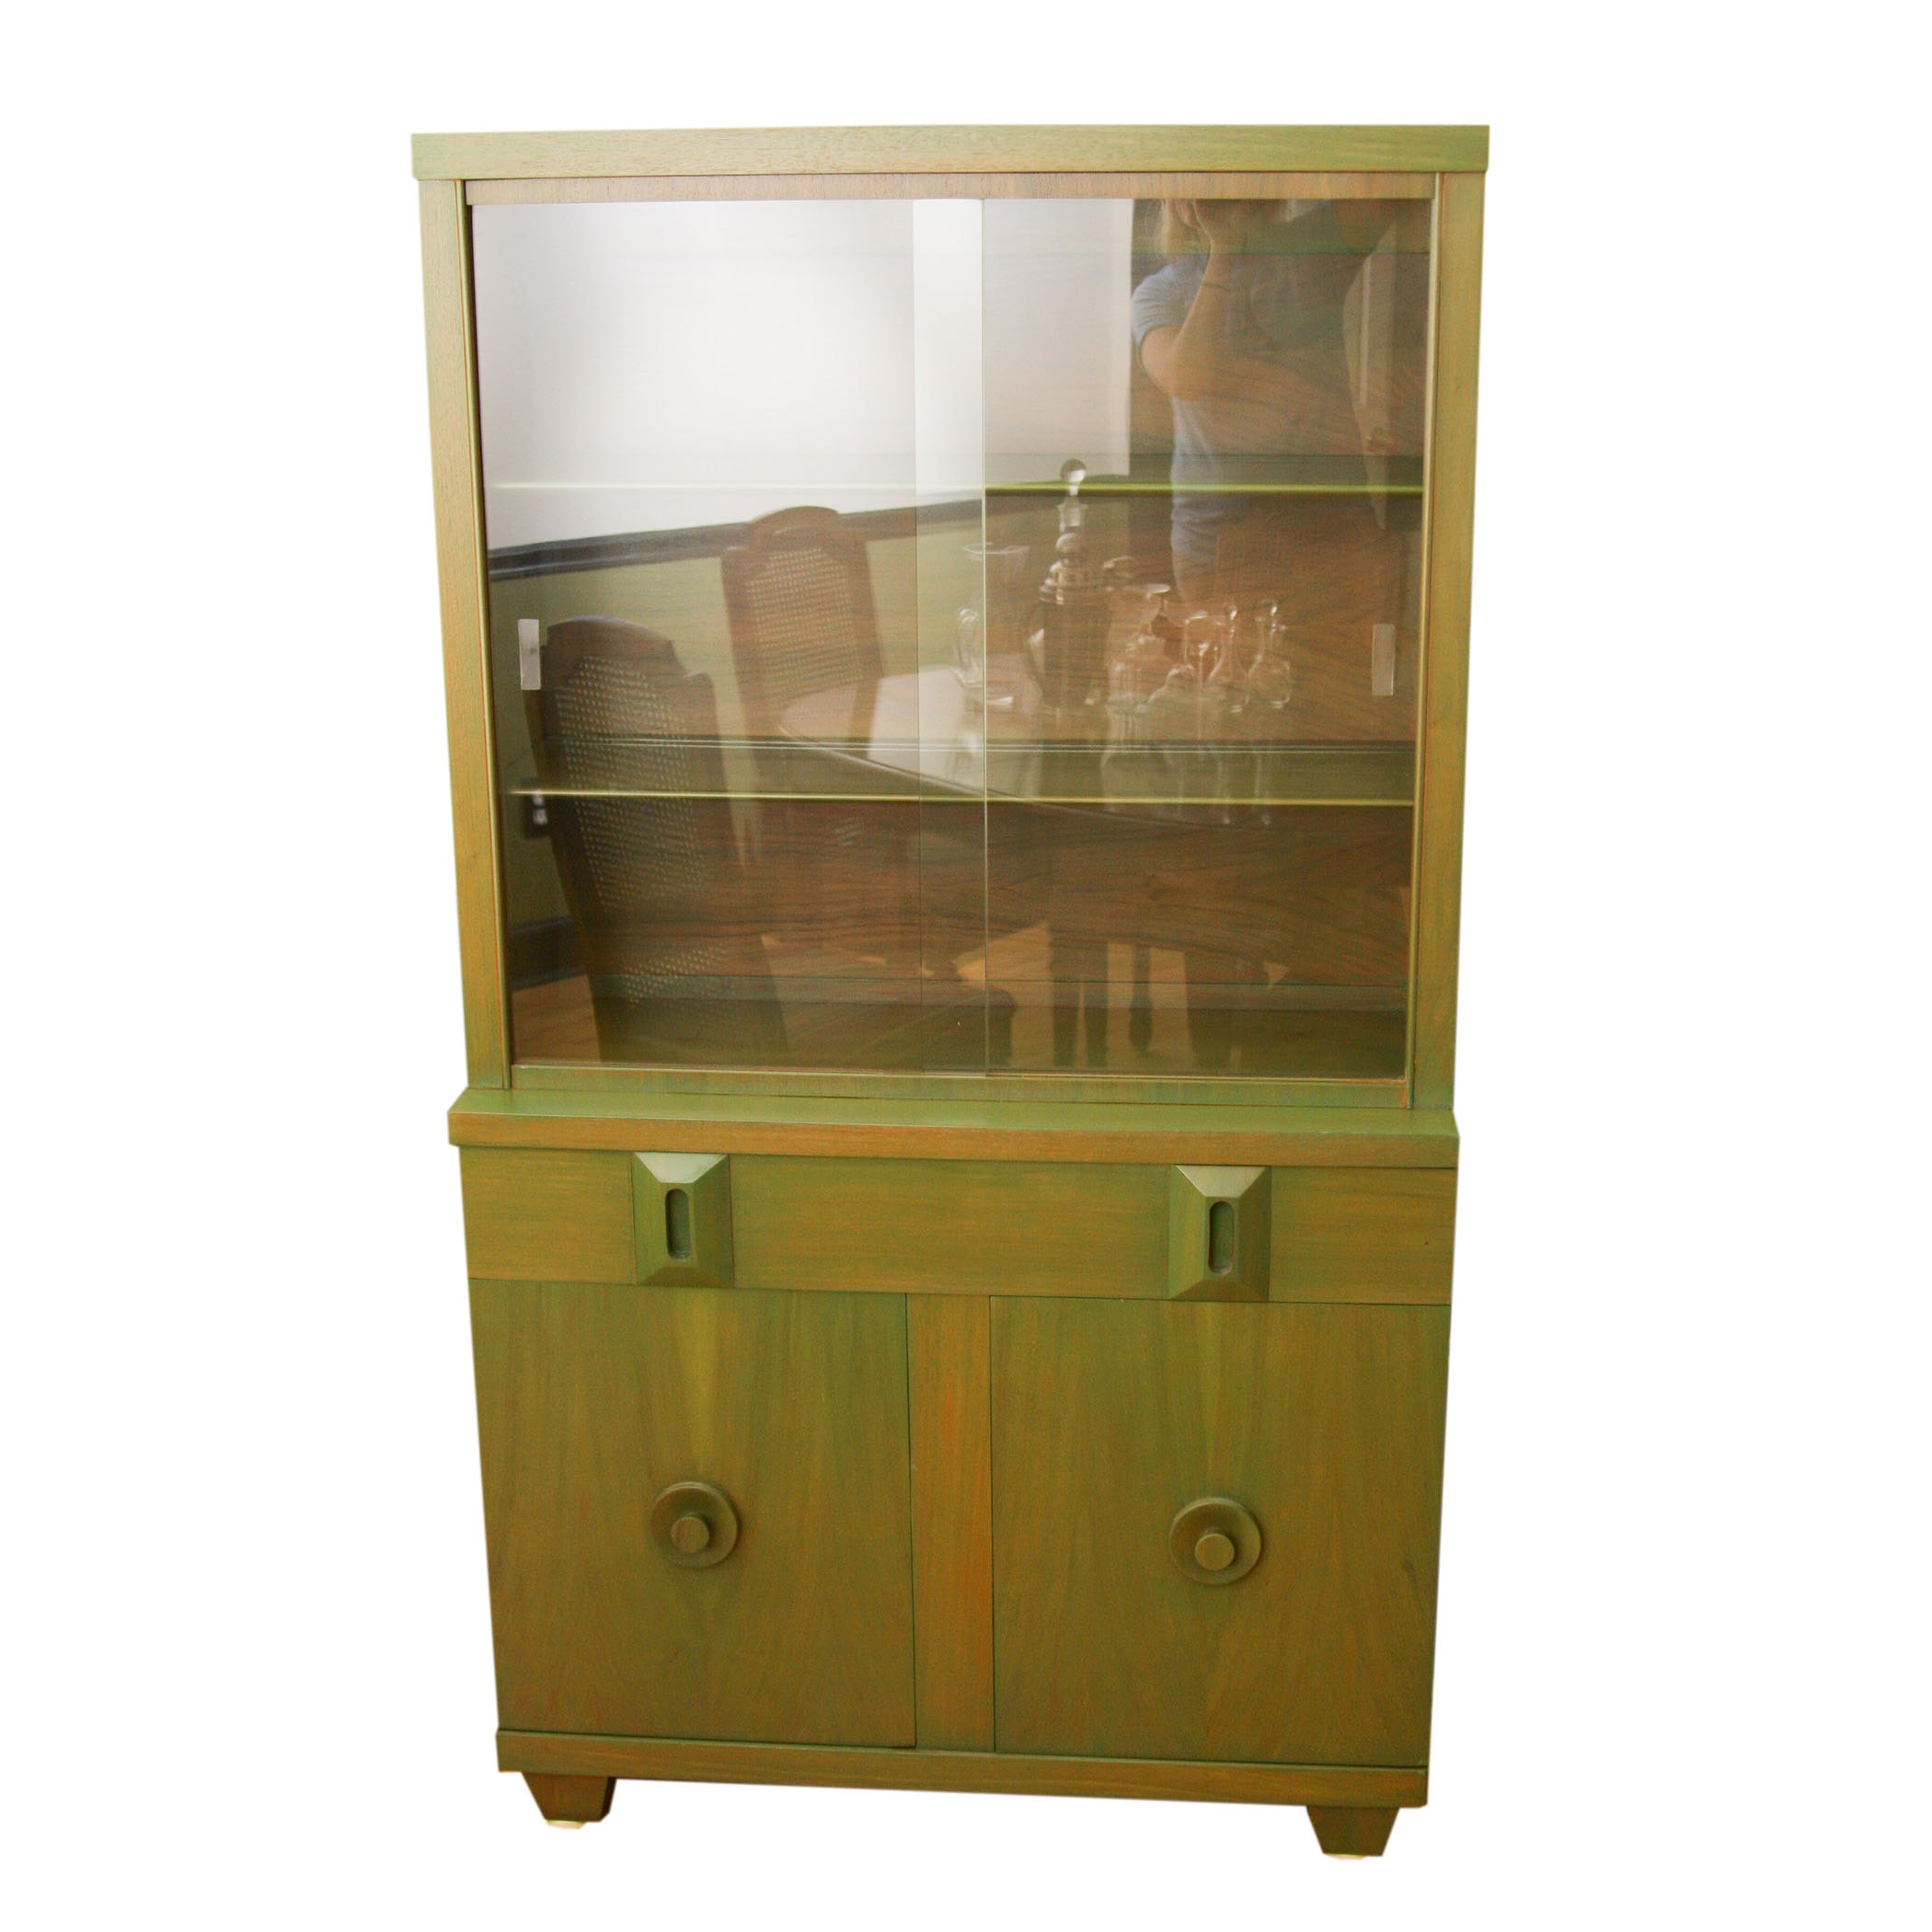 Green-Washed Wood Cupboard With Sliding Glass Doors